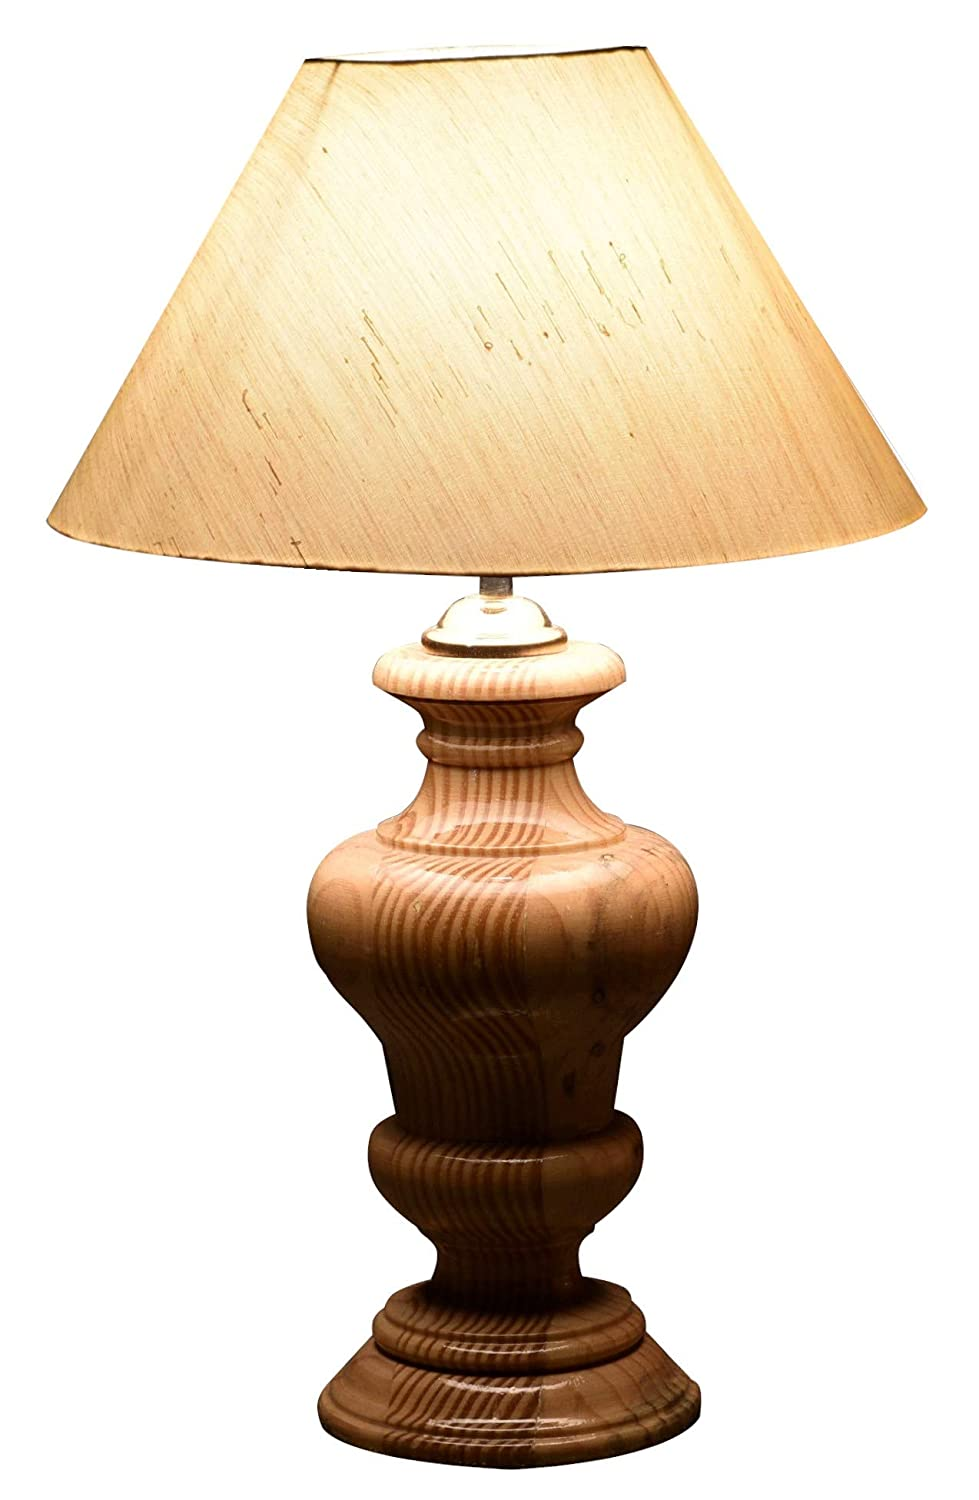 Buy Shadow Killer Modern Shade Lamp In Pine Wood Decorative Items Gift Lamp Bedside Lamp Decoration Items Table Decor For Home Decor Gift Items Diwali Gift Online At Low Prices In India Amazon In